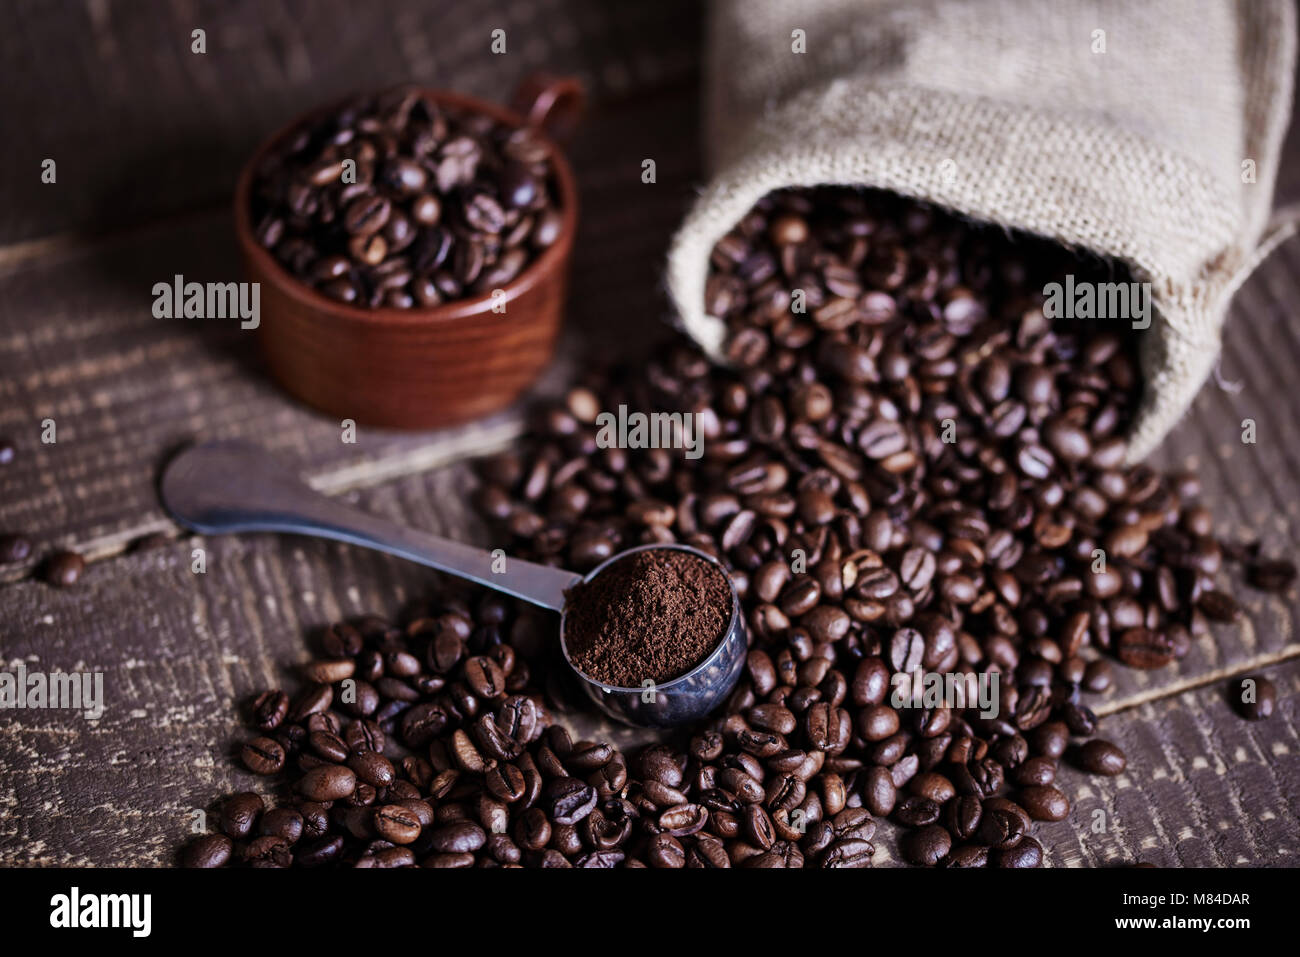 Beans of coffee and jute bag on wooden table - Stock Image